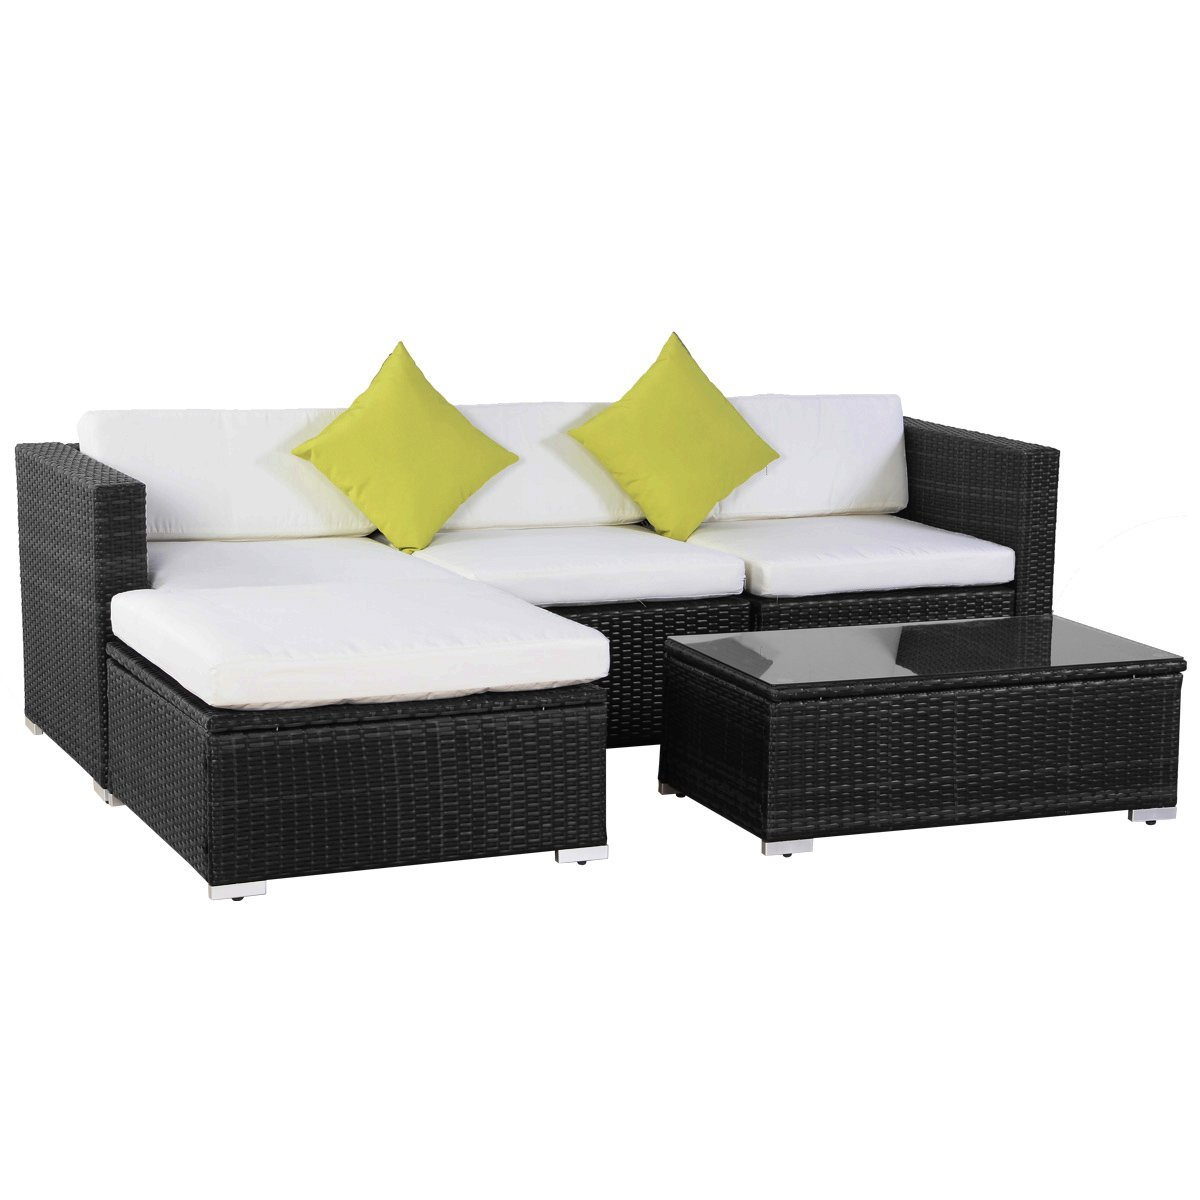 fds 5 teiliges outdoor garten rattan gartenm bel ecksofa sofa couch deck g nstig bestellen. Black Bedroom Furniture Sets. Home Design Ideas